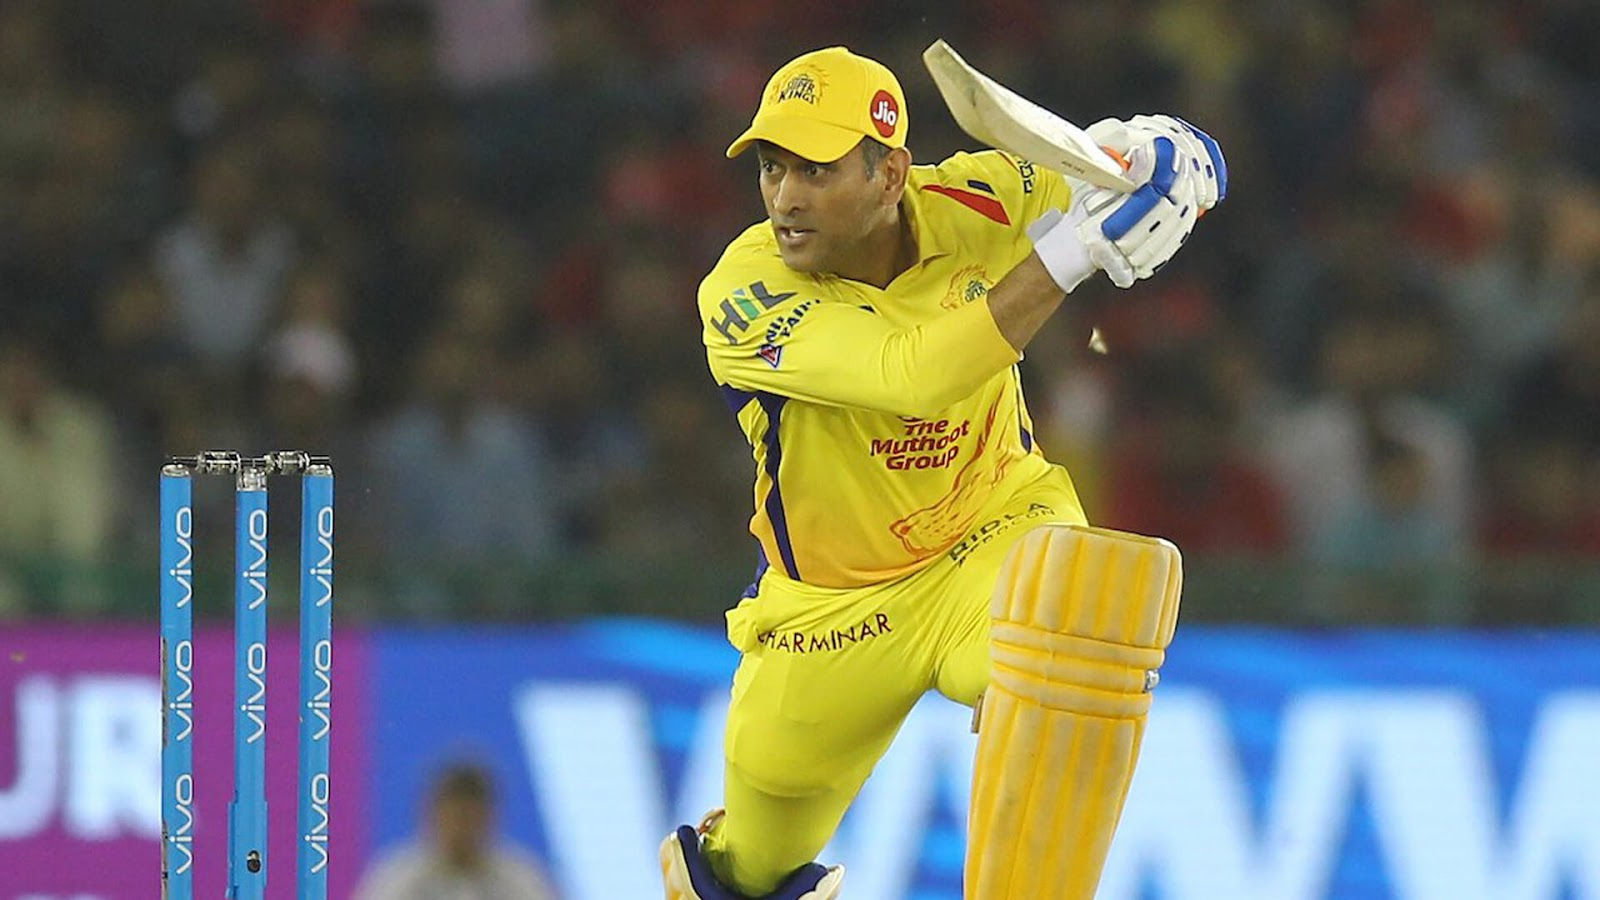 Chennai Super Kings Hd Wallpapers Download Free 1080P -2374